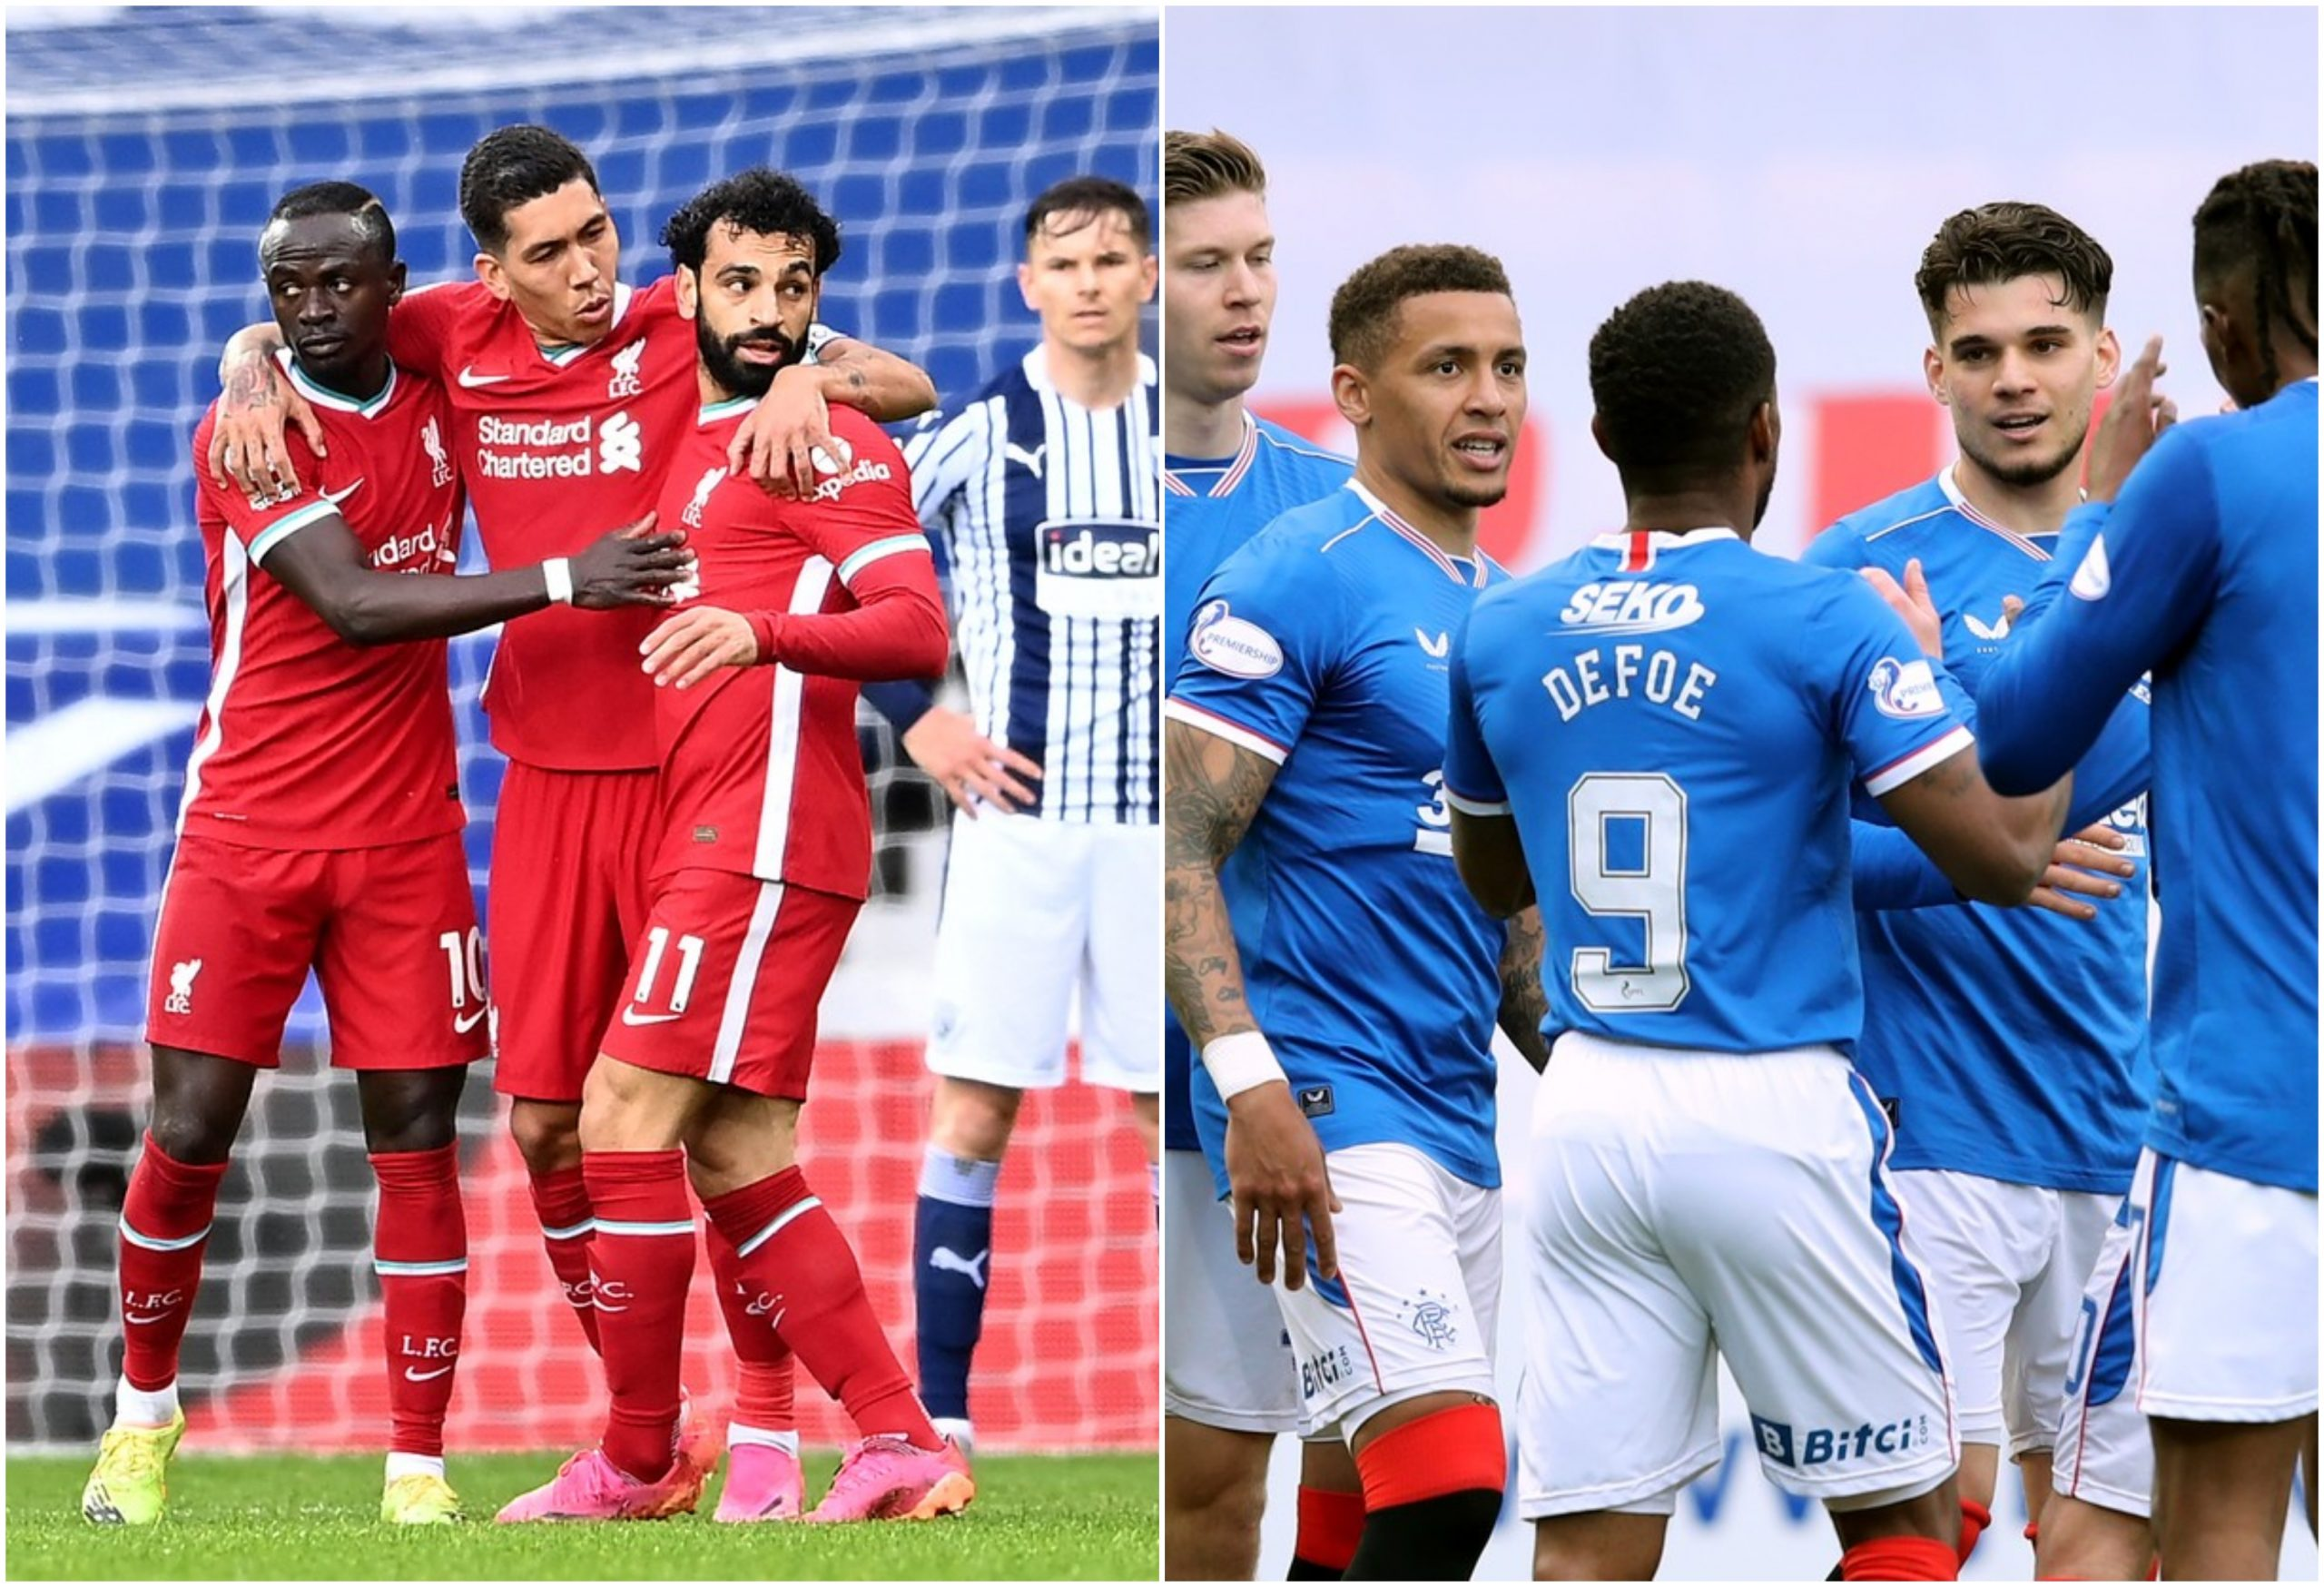 Liverpool - Rangers amical